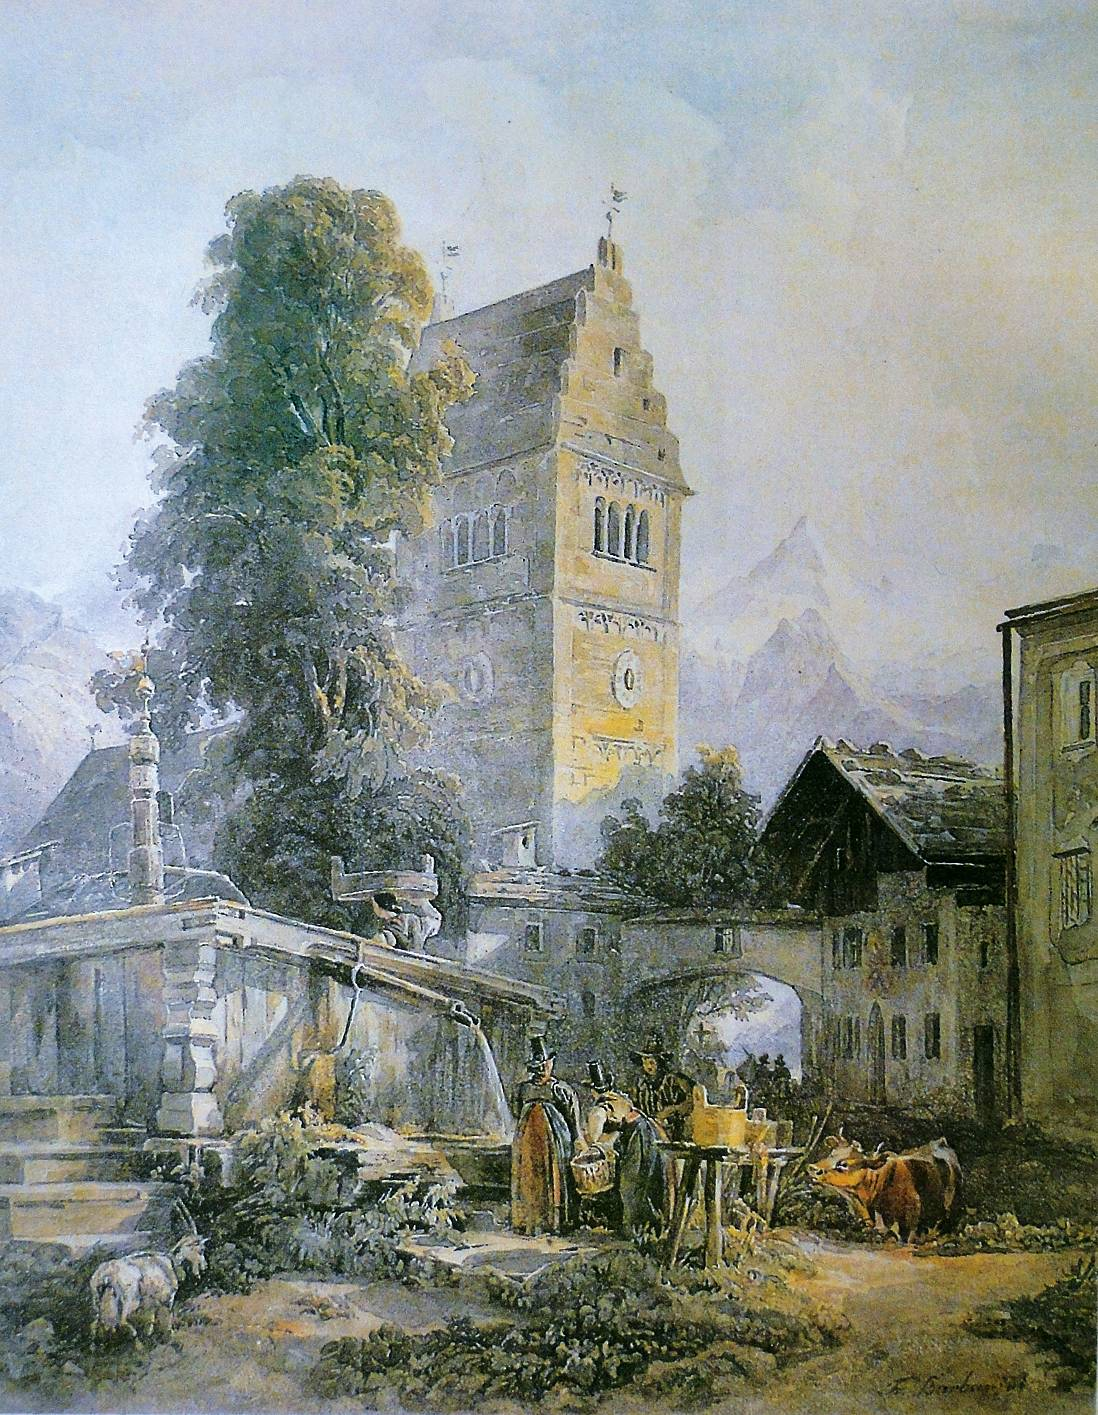 The market square in the early 19th century